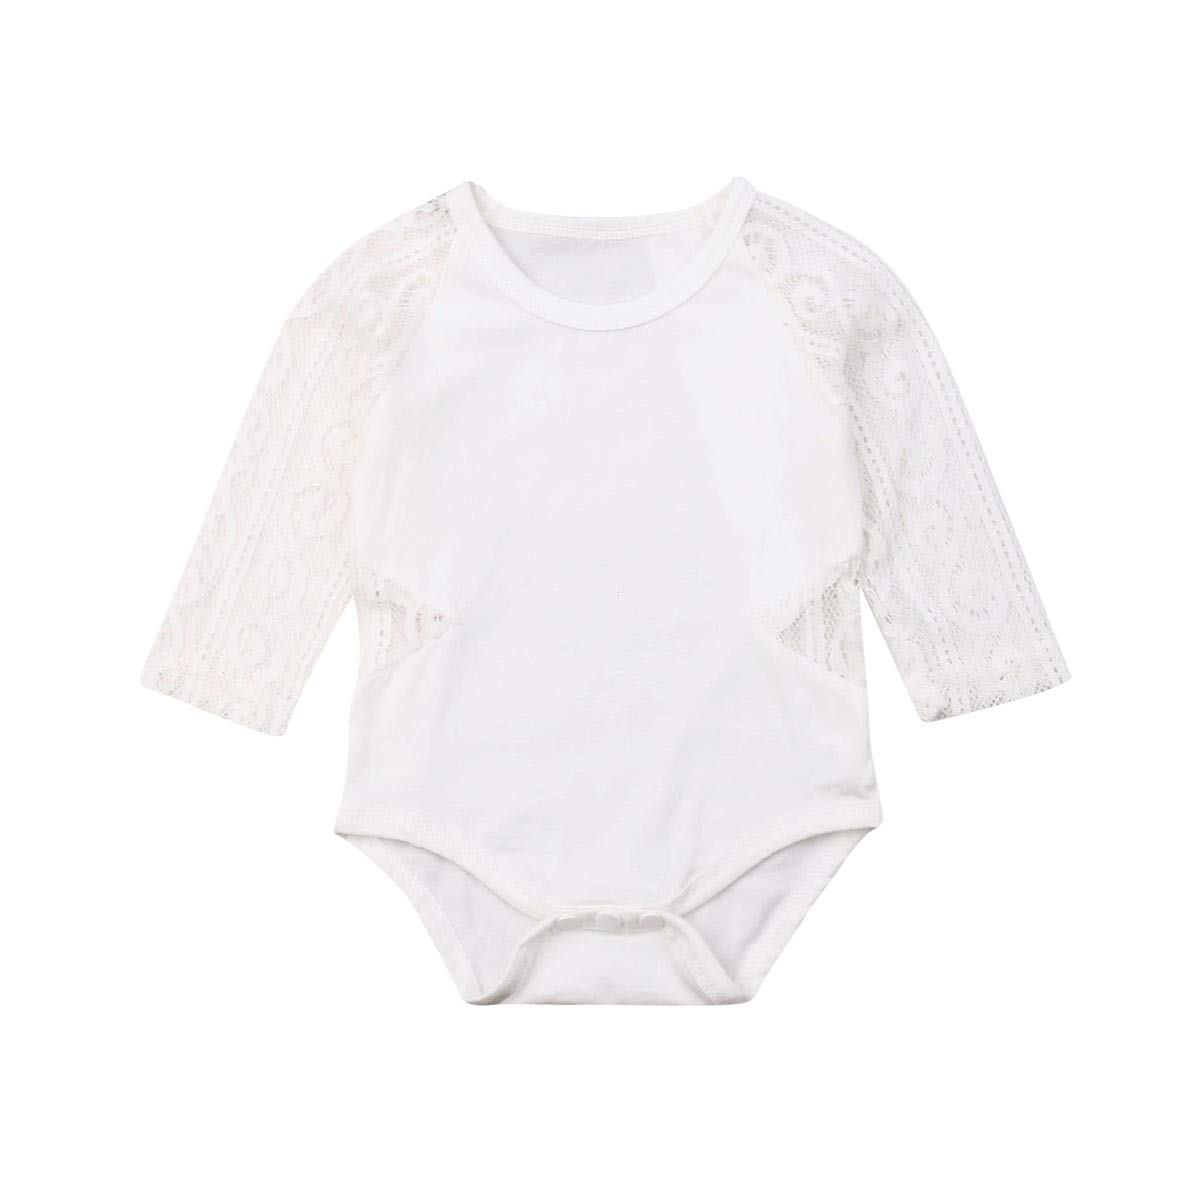 Newborn Kids Baby Girl Boy Long Sleeve Clothes Romper Bodysuit Jumpsuit Overalls Lace Outfits